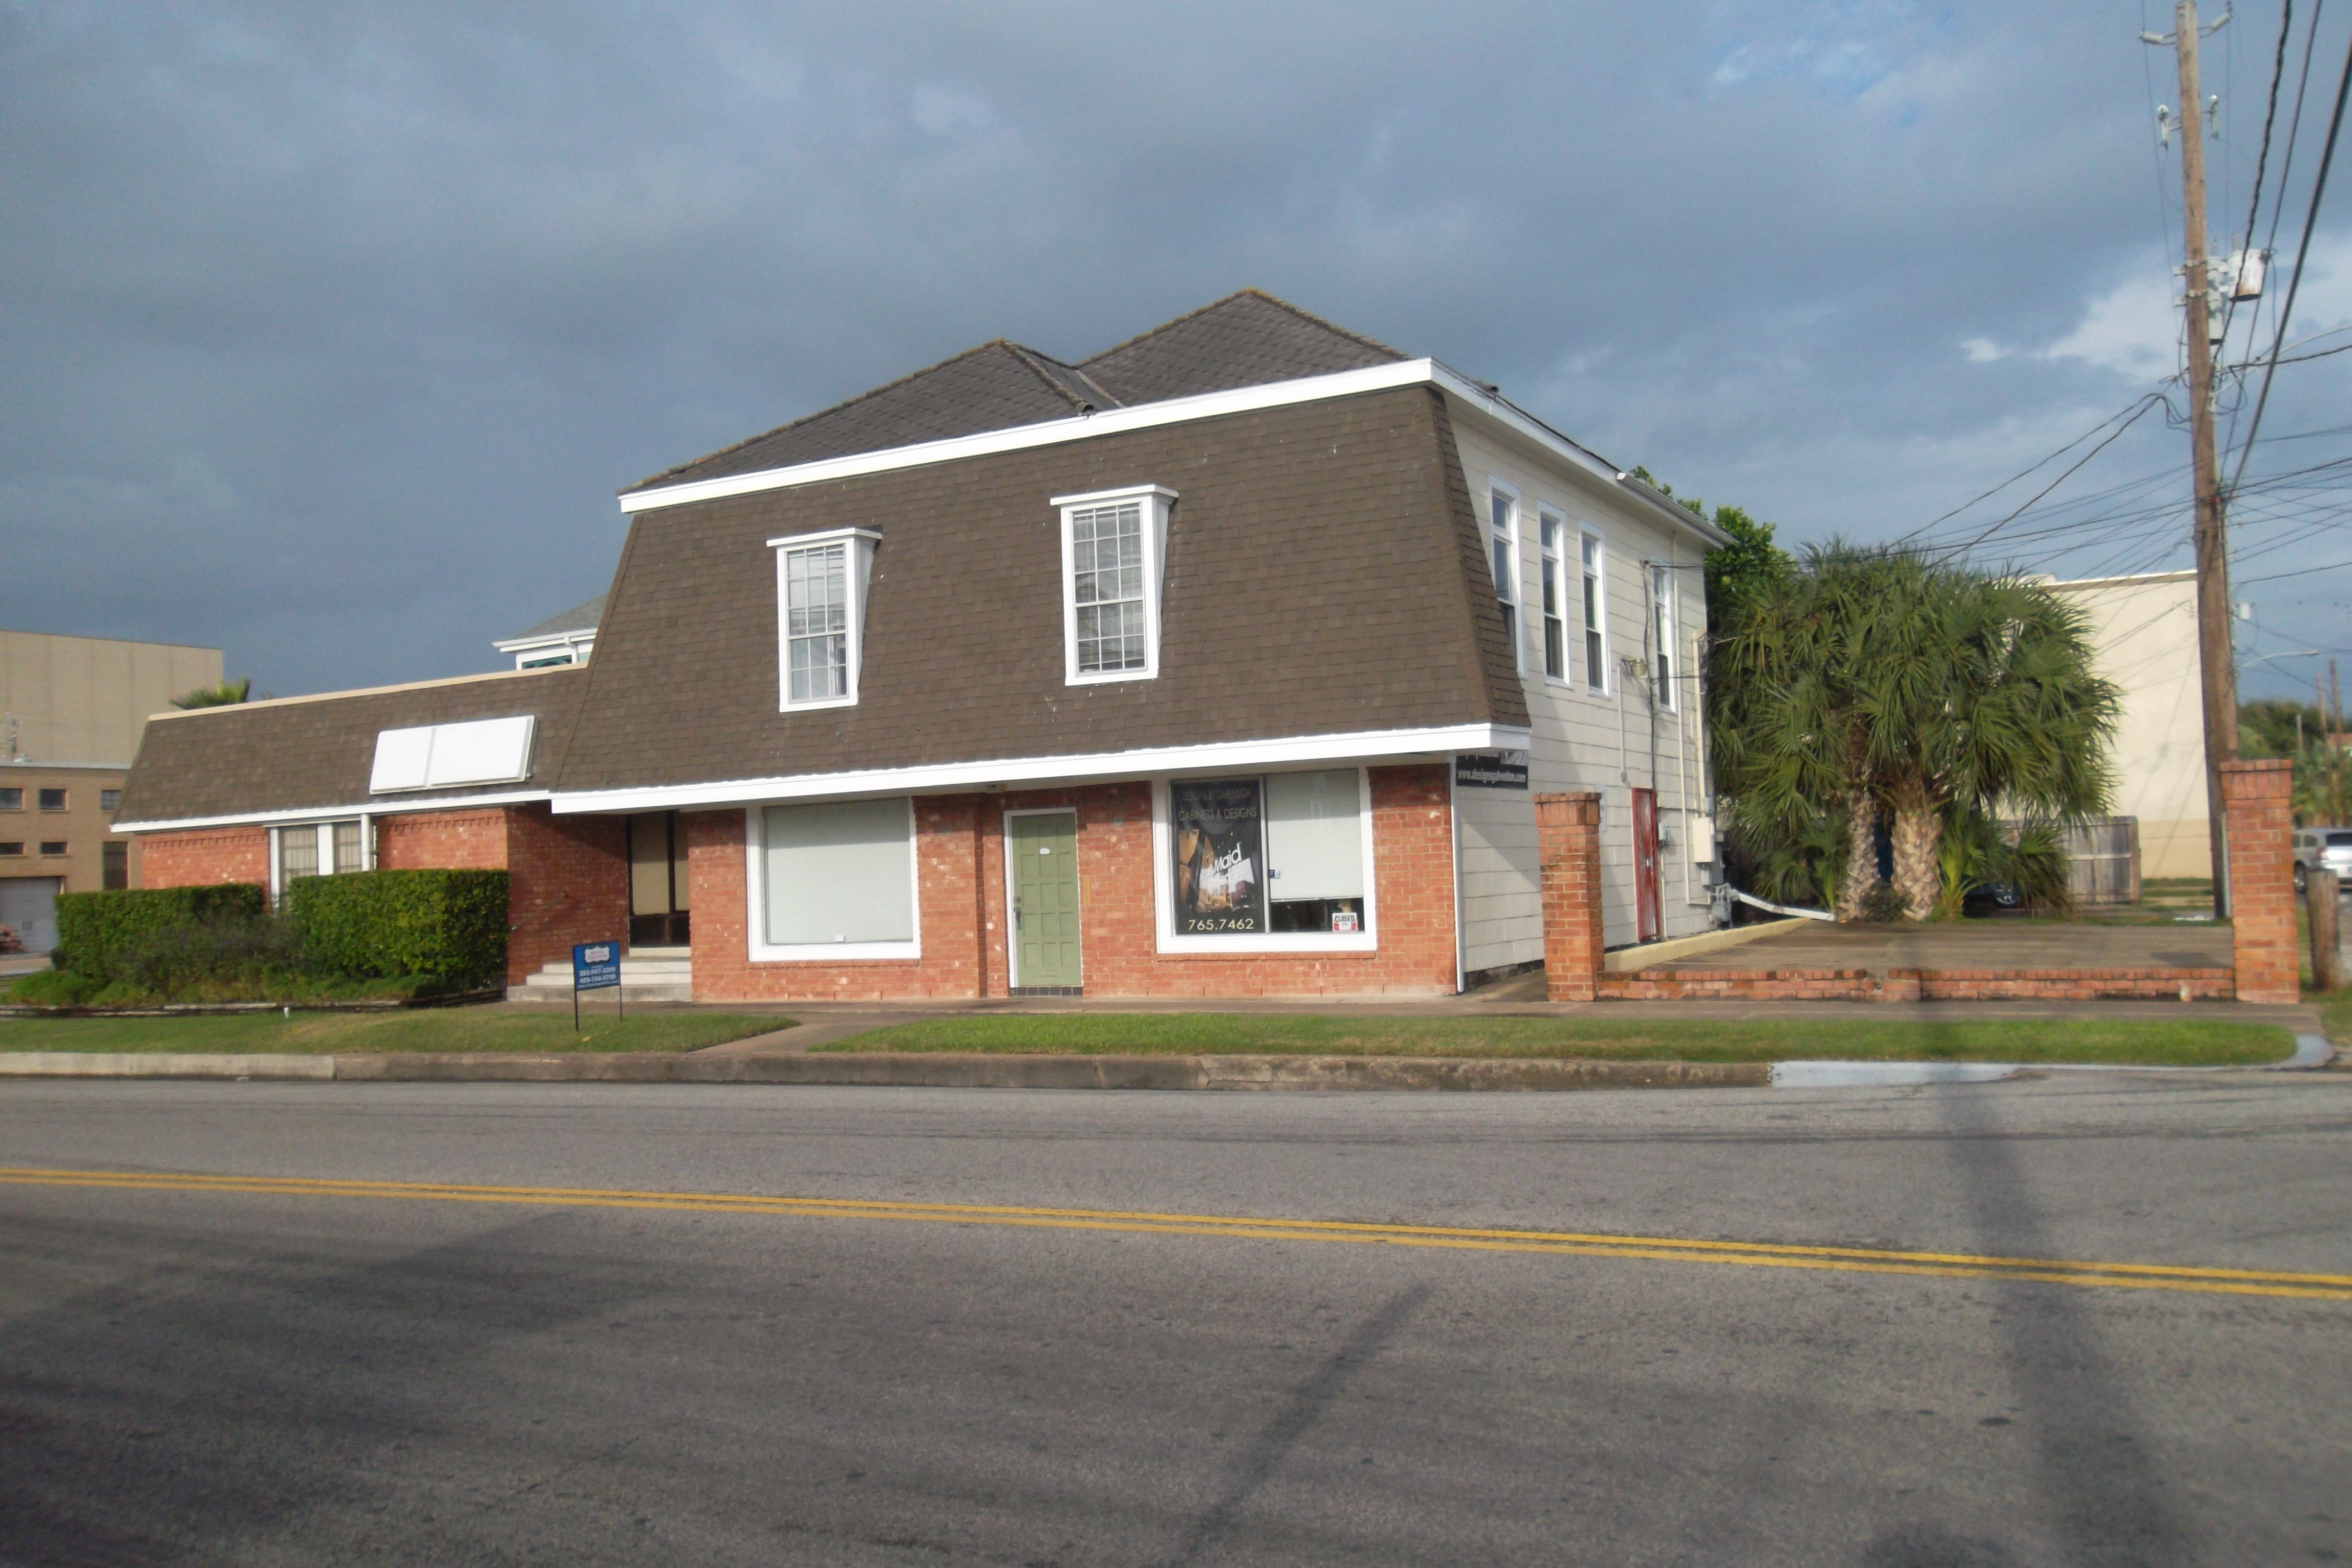 Front of 910 21st Street, <a href='https://www.advantagesold.com/index.php?types[]=1&types[]=2&areas[]=city:Galveston&beds=0&baths=0&min=0&max=100000000&map=0&quick=1&submit=Search' title='Search Properties in Galveston'>Galveston</a>